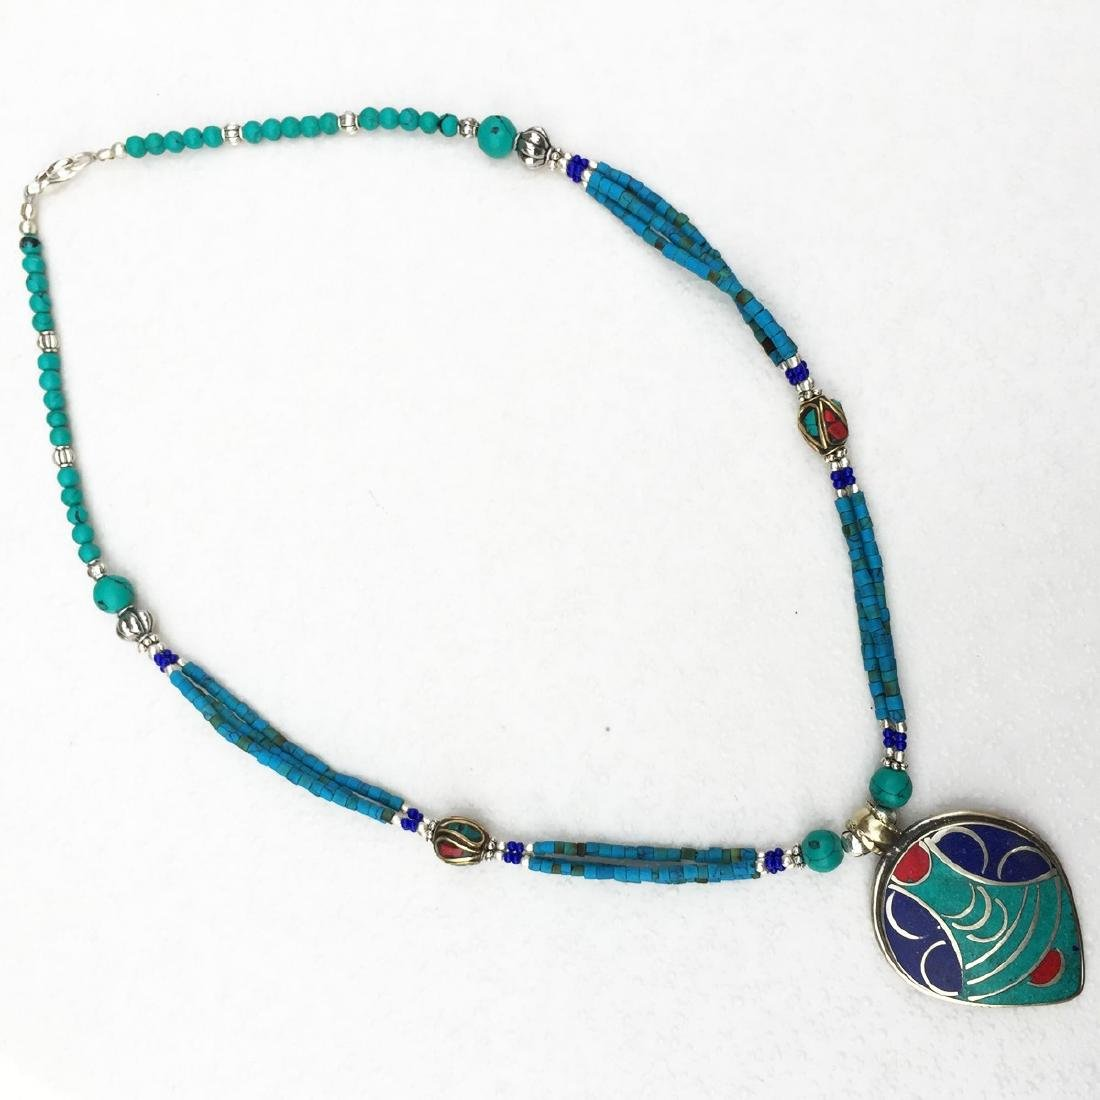 Tibetan Turquoise & Coral Statement Necklace - 2